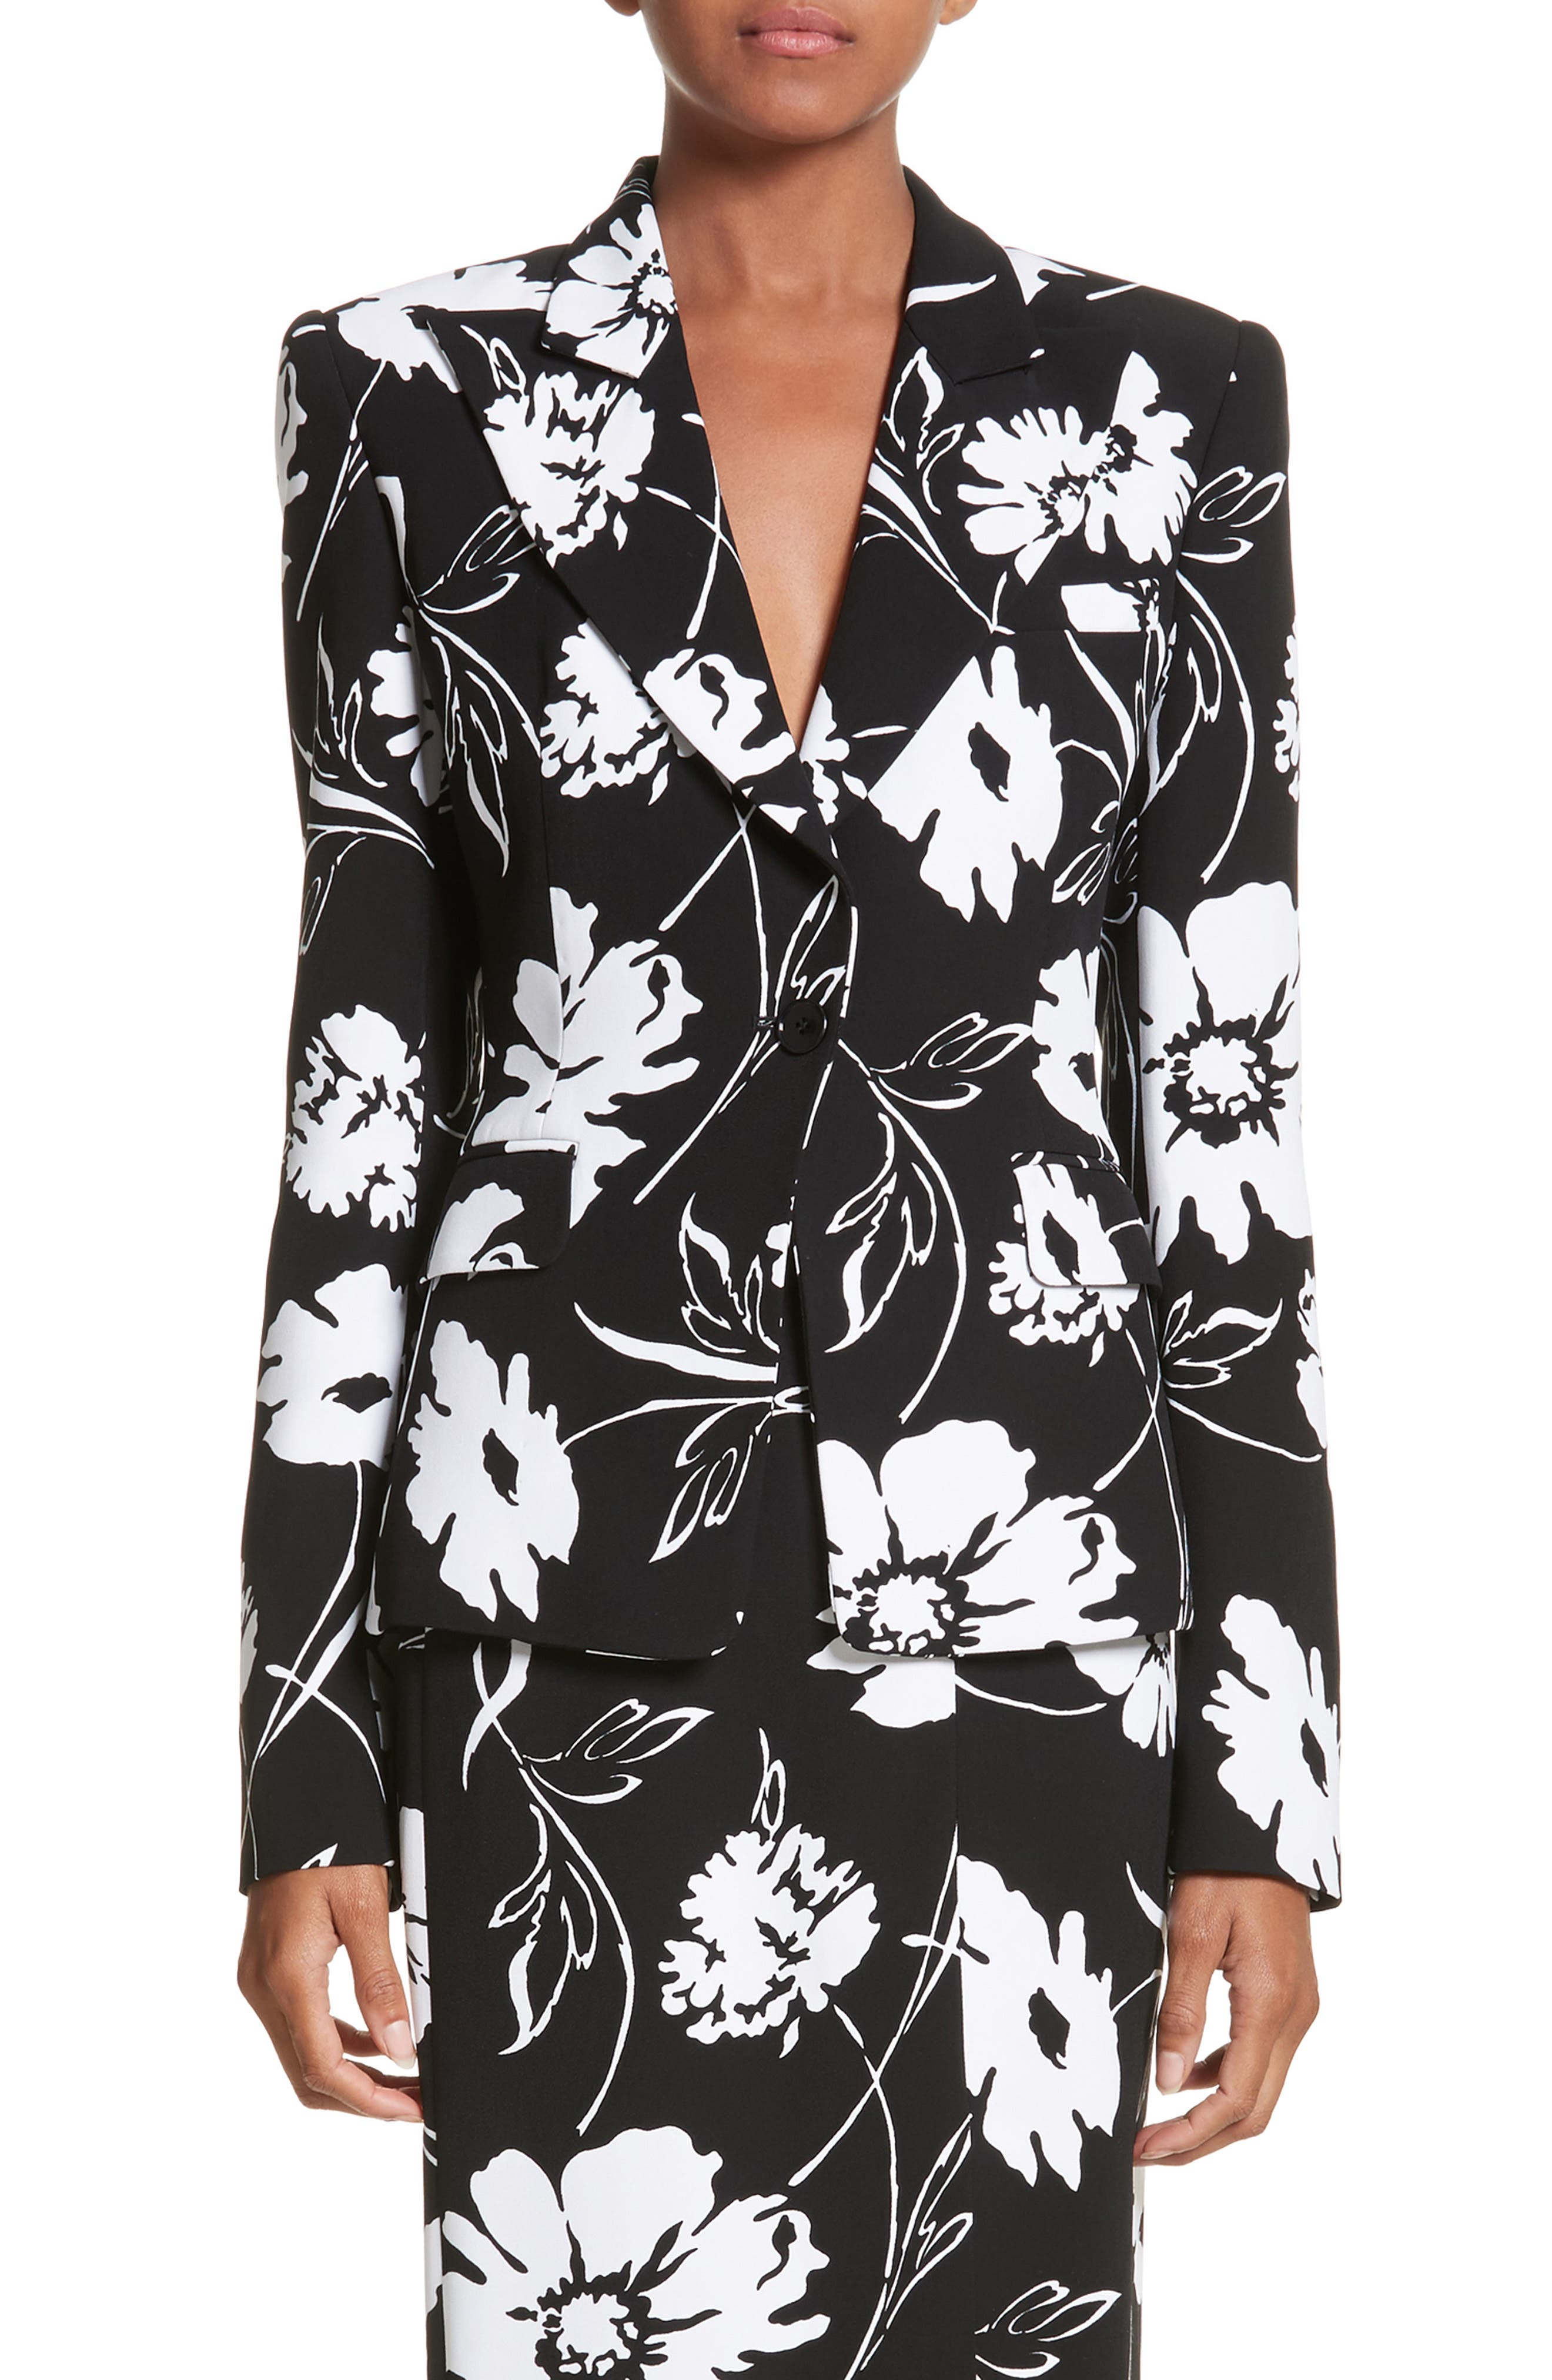 Floral Print Blazer,                         Main,                         color, Black / White